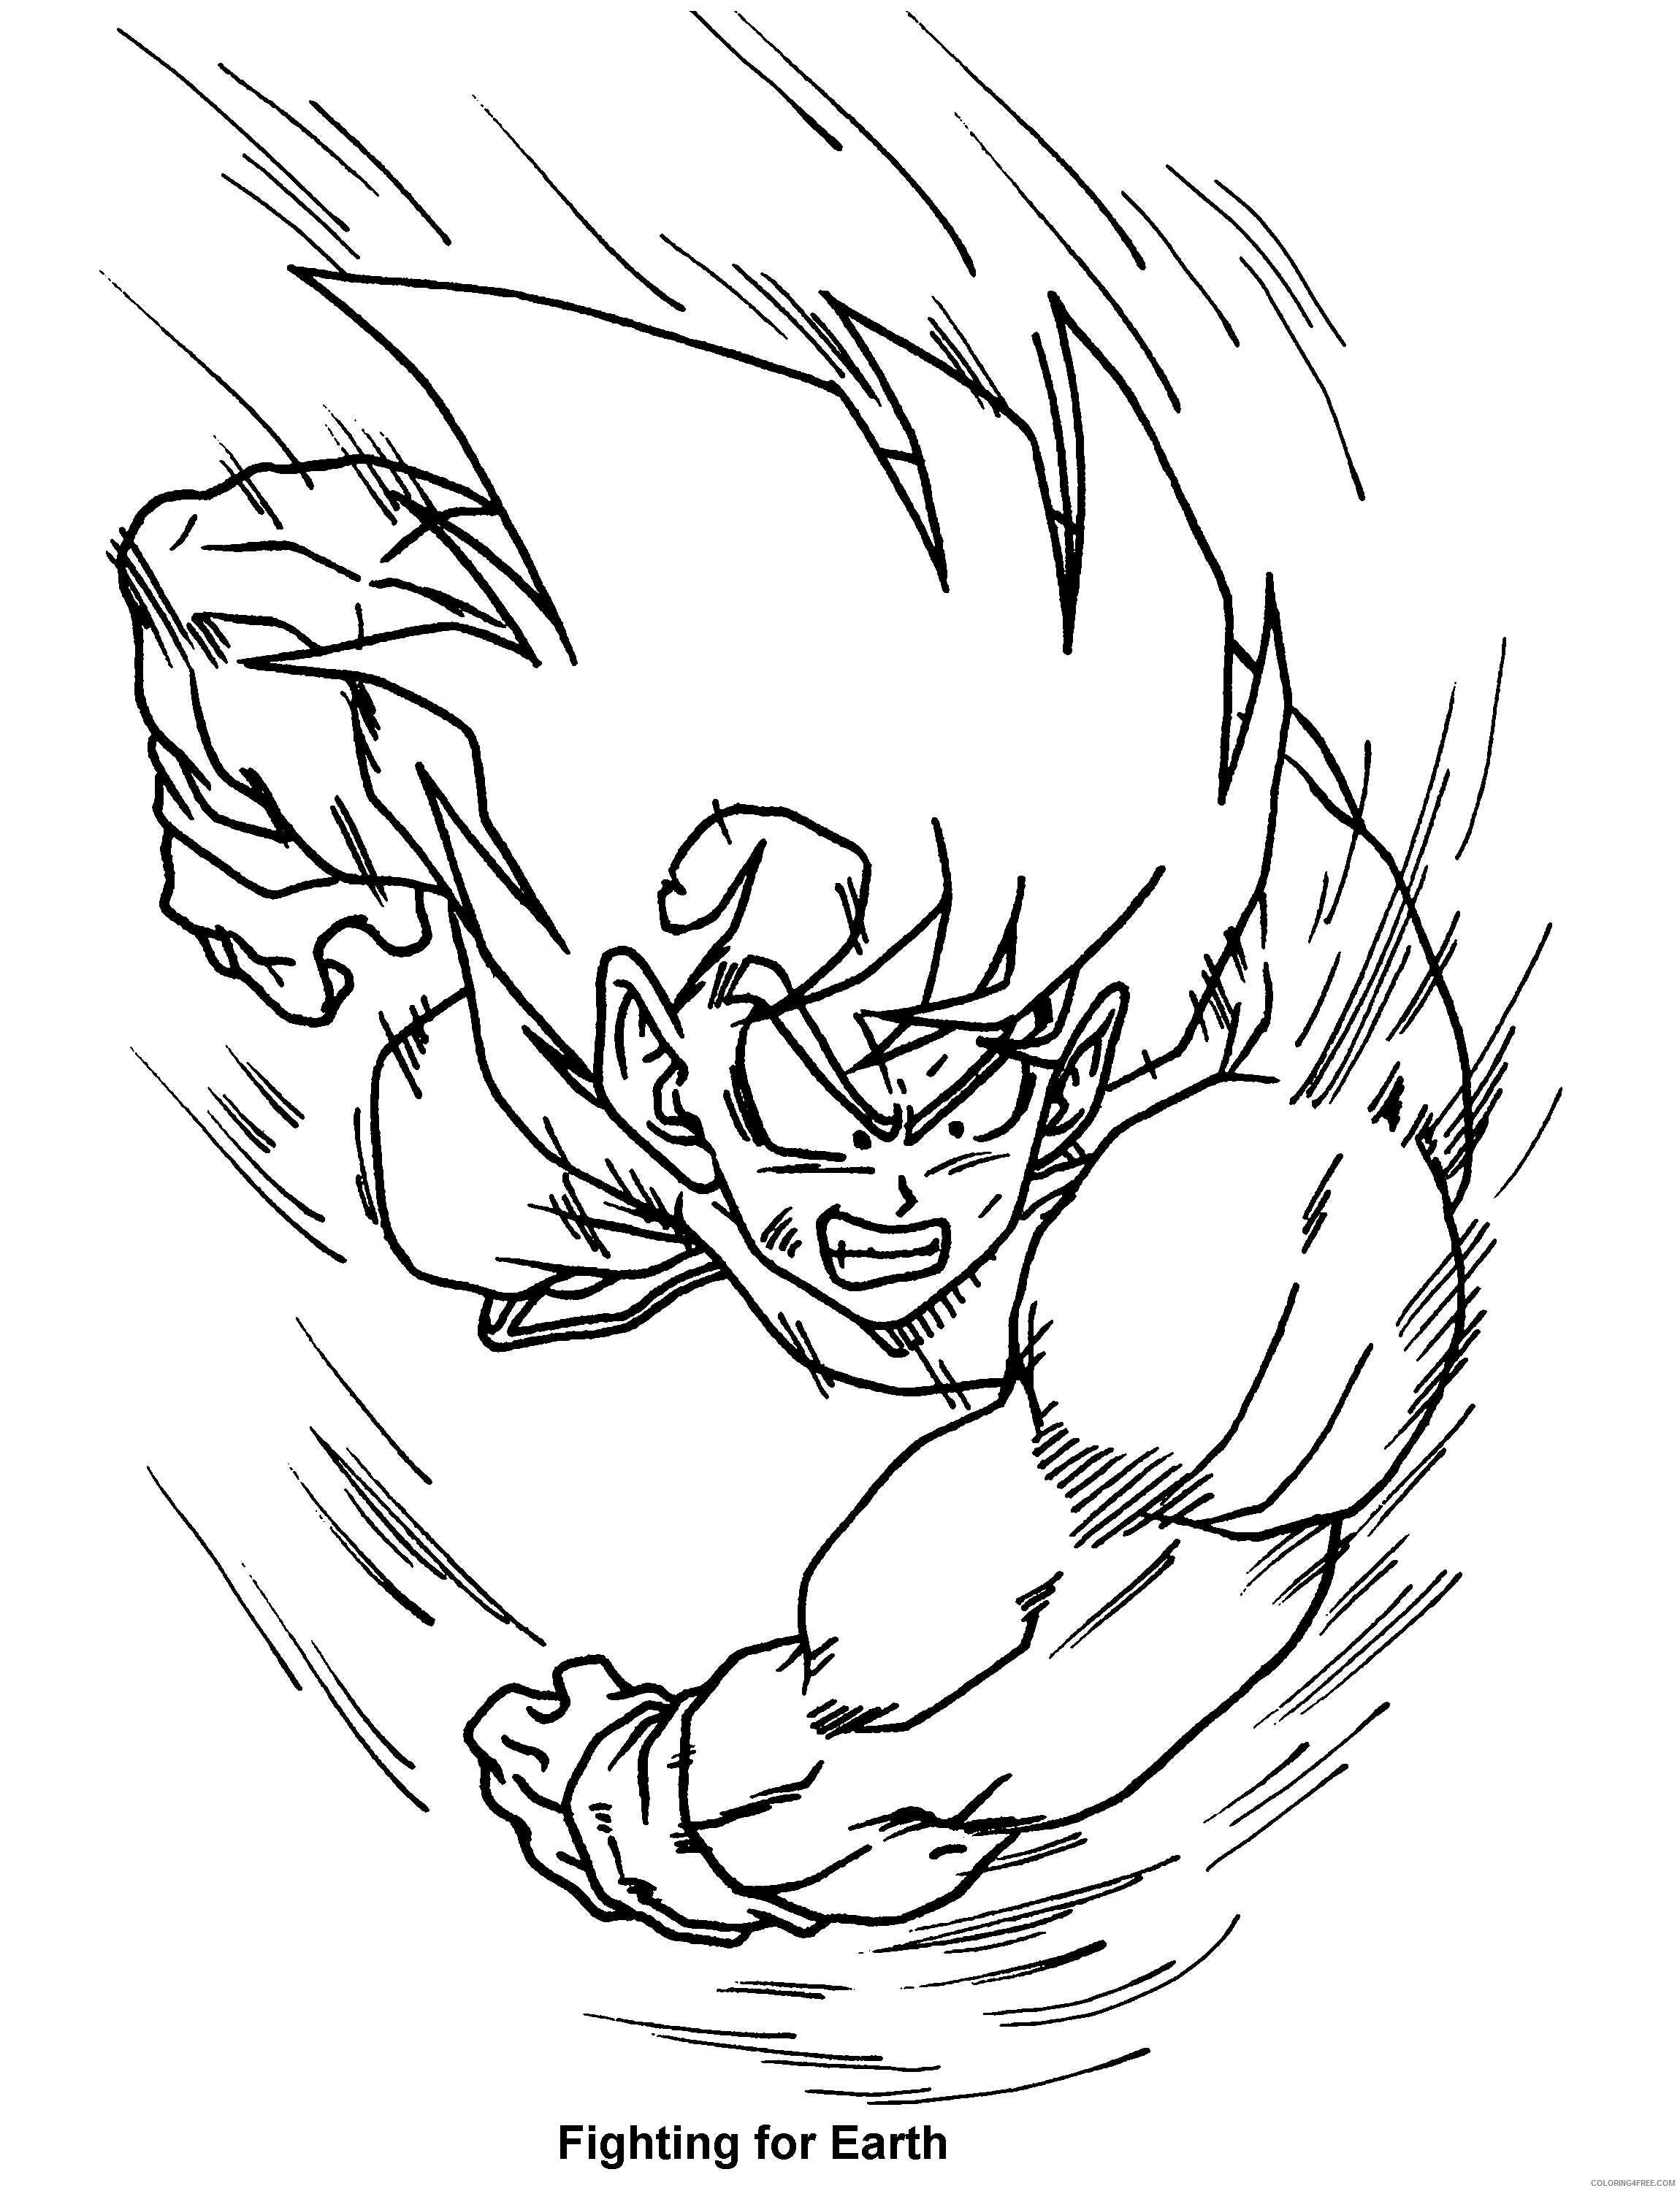 022 dragon ball z fighting for earth Printable Coloring4free